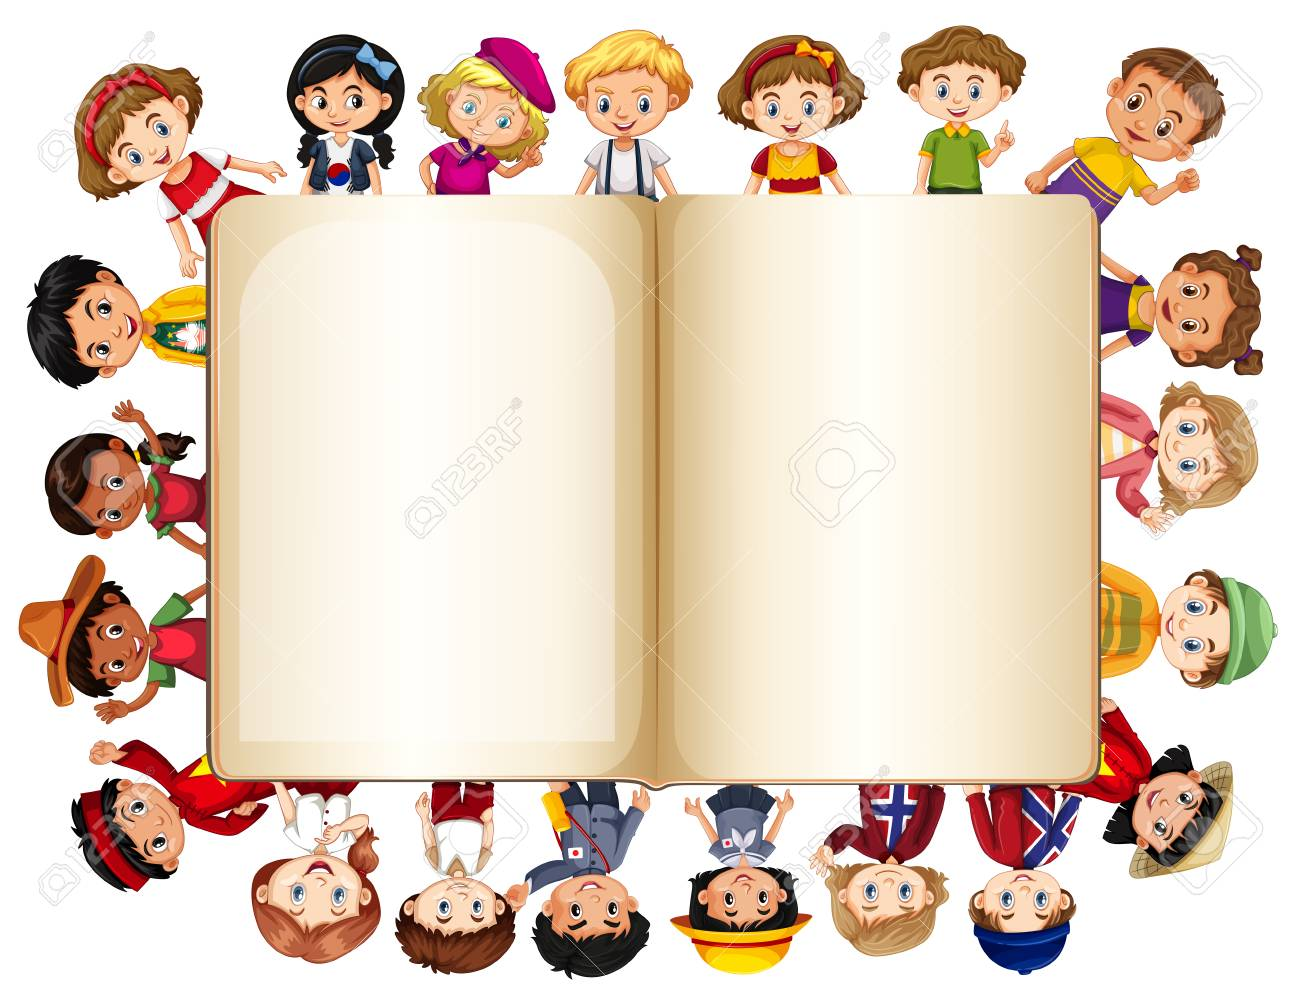 Blank book template with children on border illustration